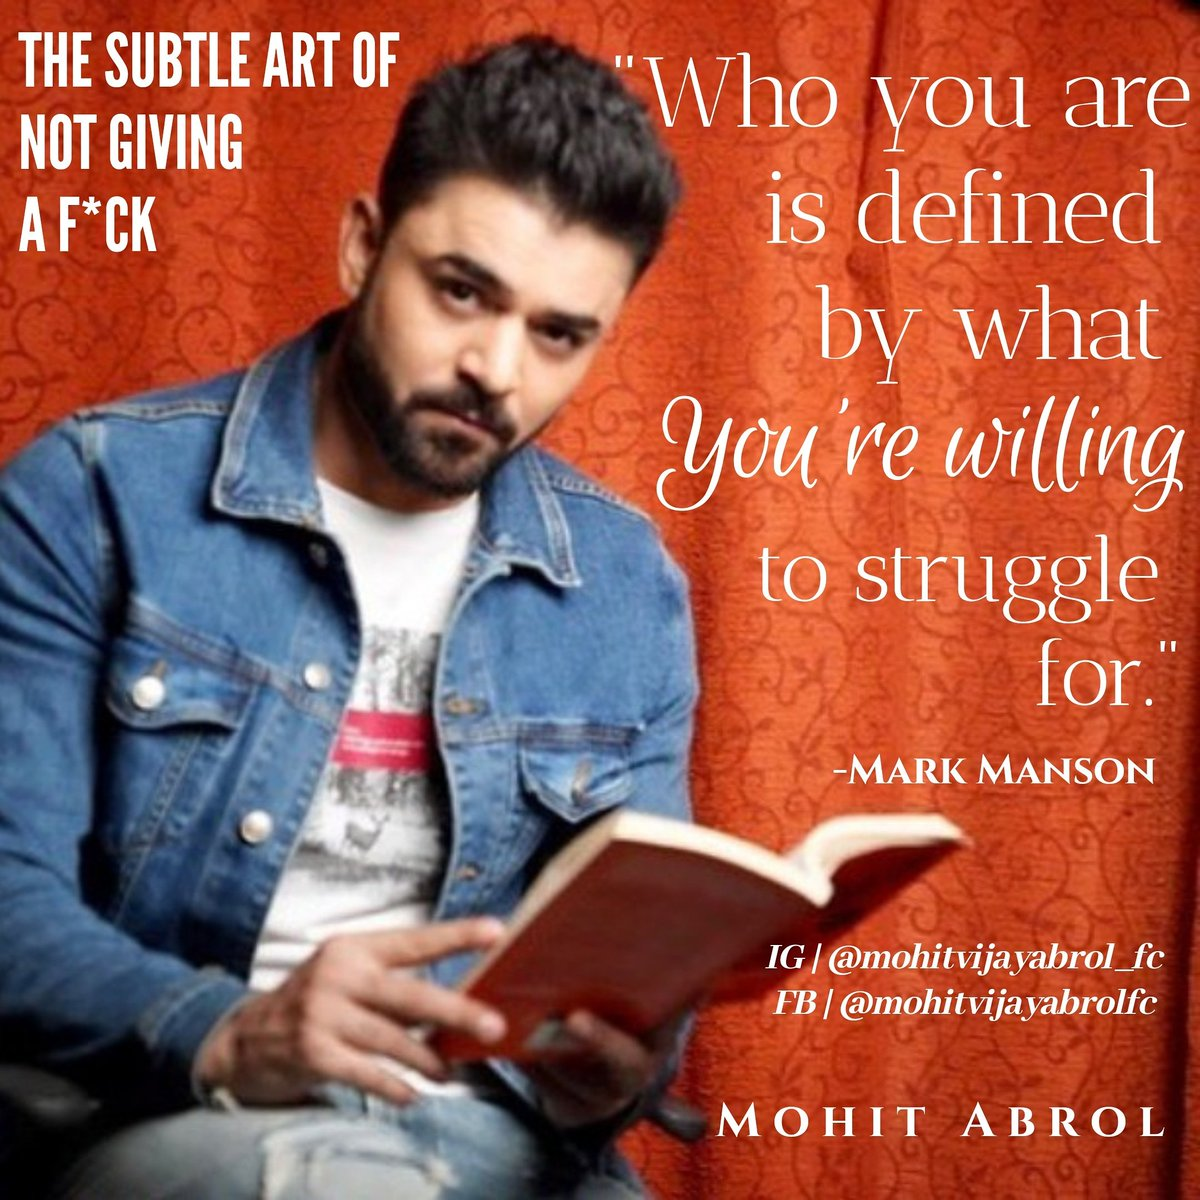 The Subtle Art Of Not Giving A F*ck #bookquotes @mohitvijayabrol  #markmansonquotes #thesubtleartofnotgivingafuck  #actor #actorslife #mohitabrol  #book #booklover #love #lovequotes #quotestoliveby #quoteoftheday #photography #quarantine #quarantinelife #quarantinemood https://t.co/x4tgf7mzFh